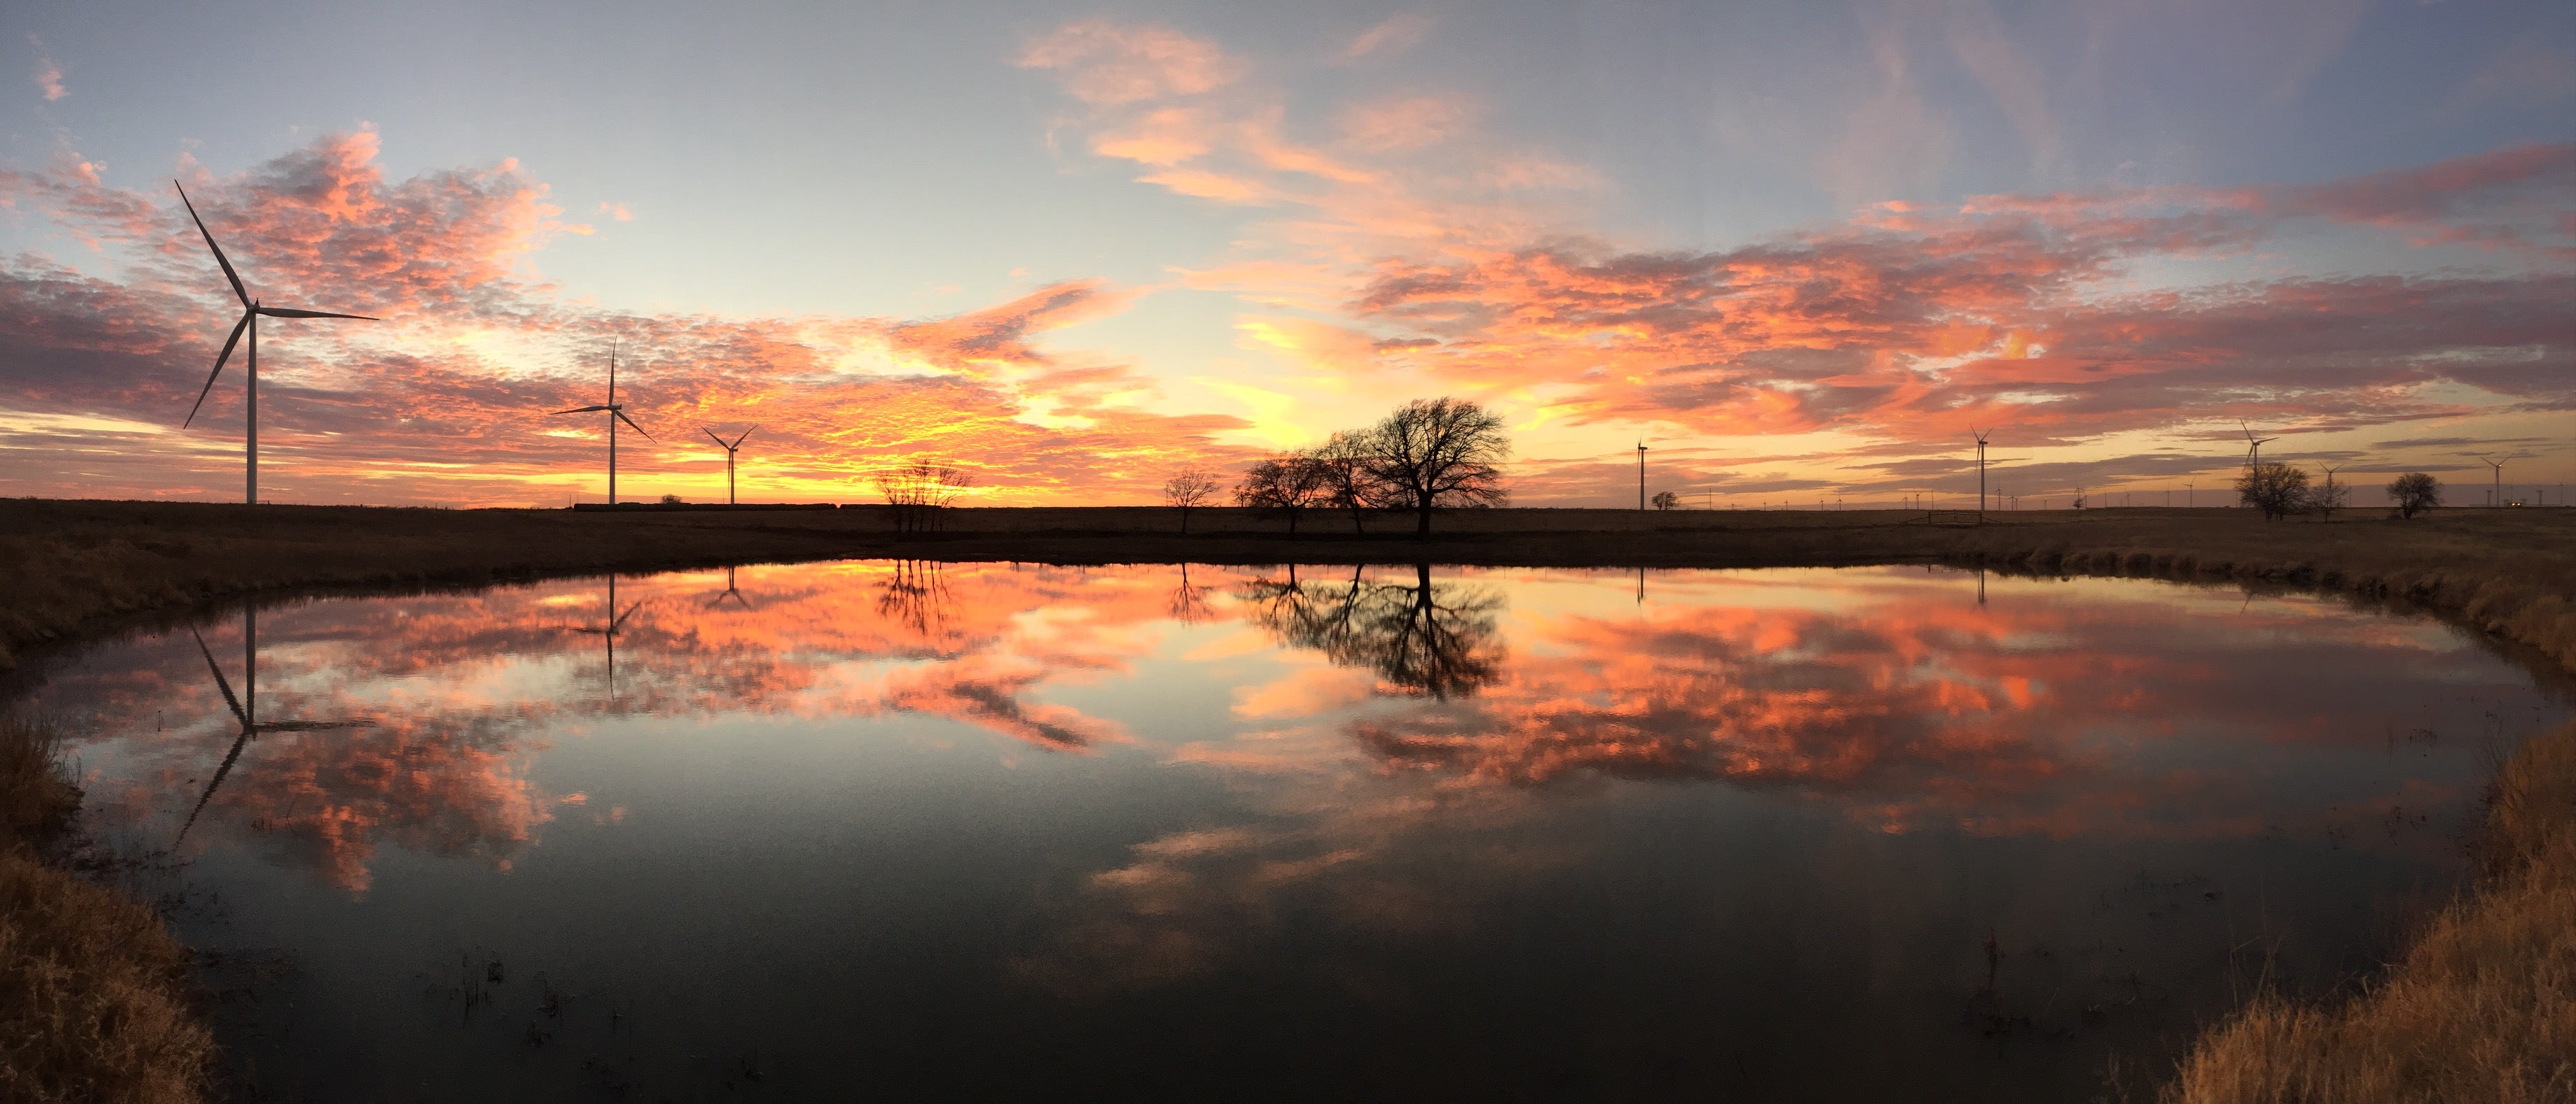 Week 1: Beautiful Sunset Mirroring The Lake in Panorama